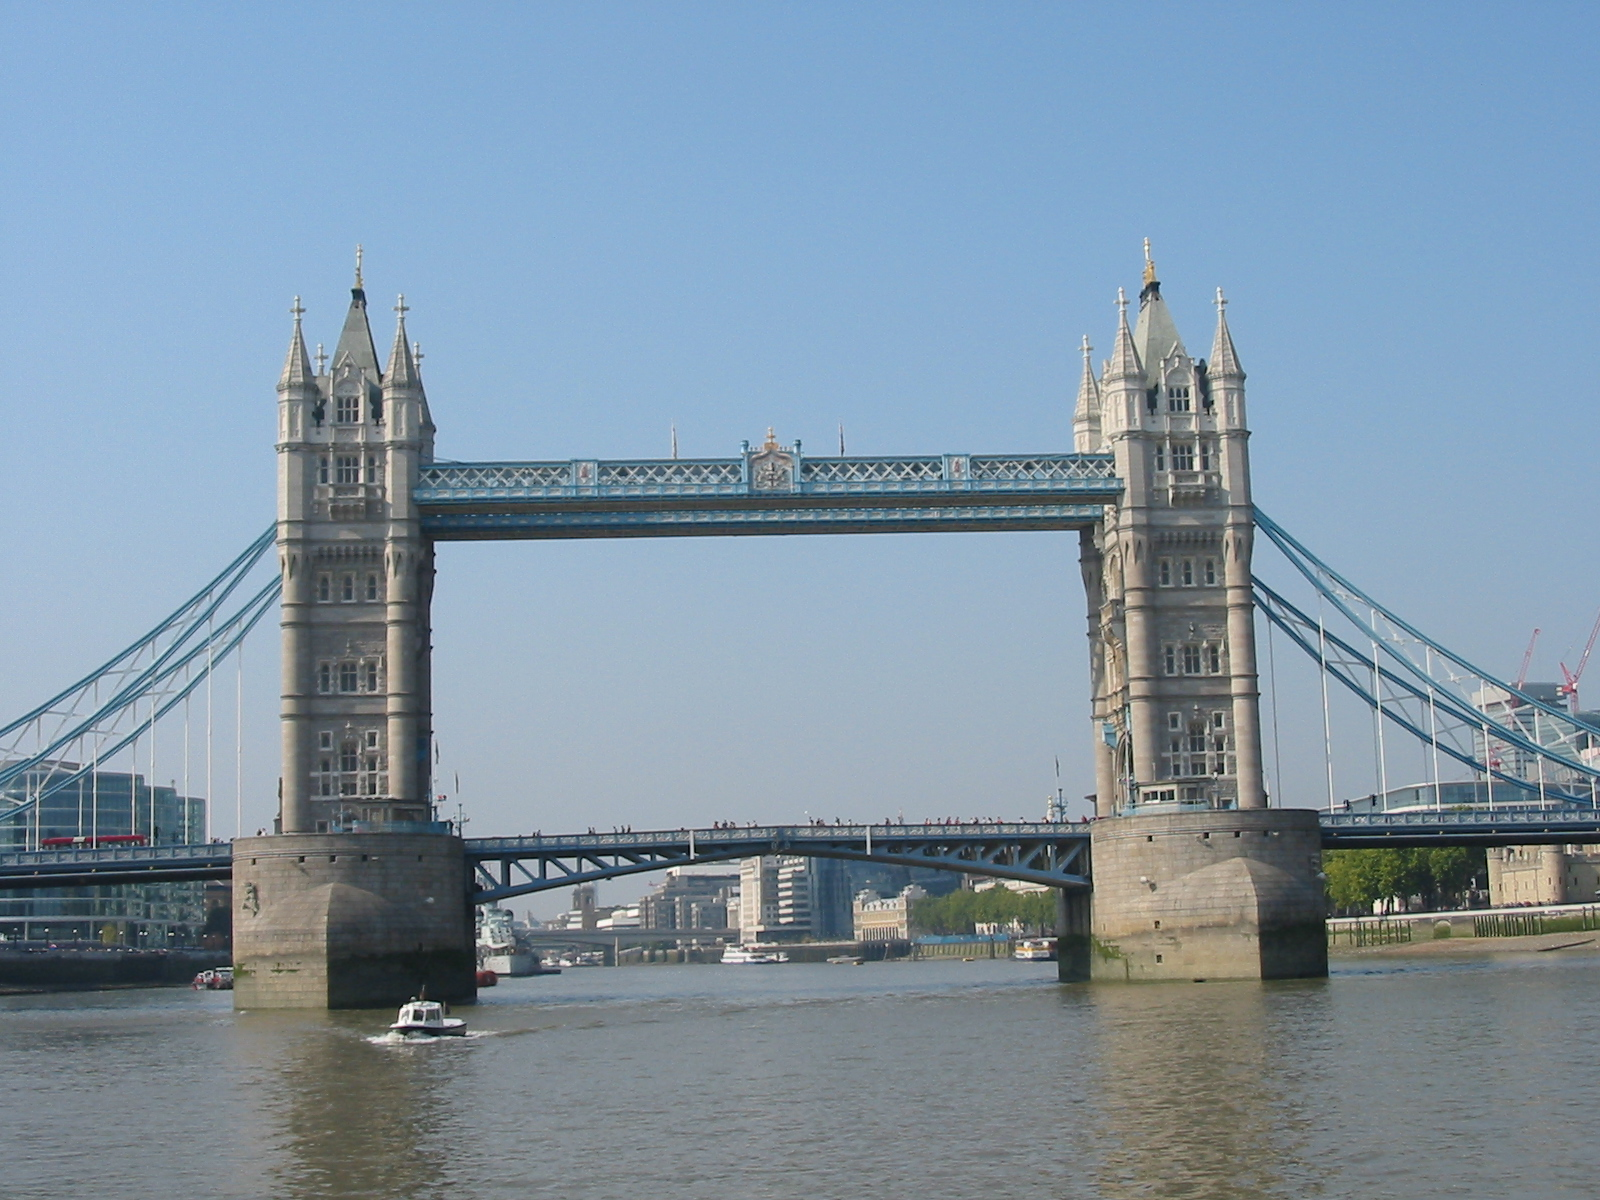 London Bridge Images Tower Bridge File:tower Bridge London.jpg